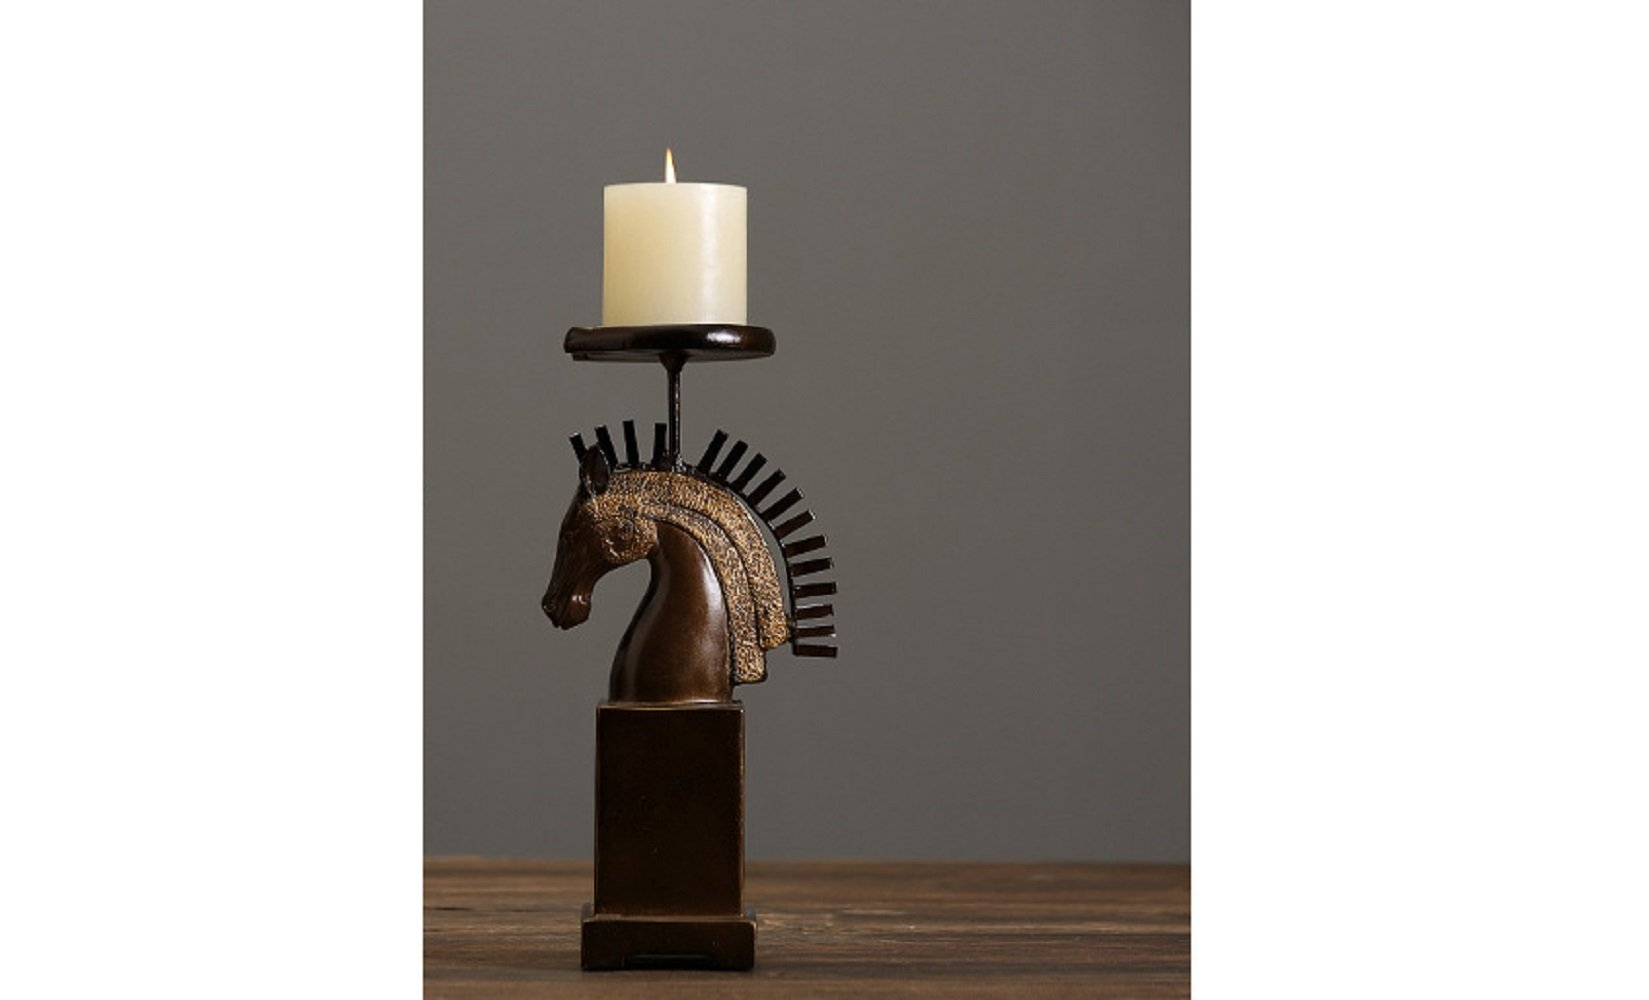 Bwlzsp American country retro horse head candlestick resin handicraft animal decoration pendant LU713118 (Color : S)